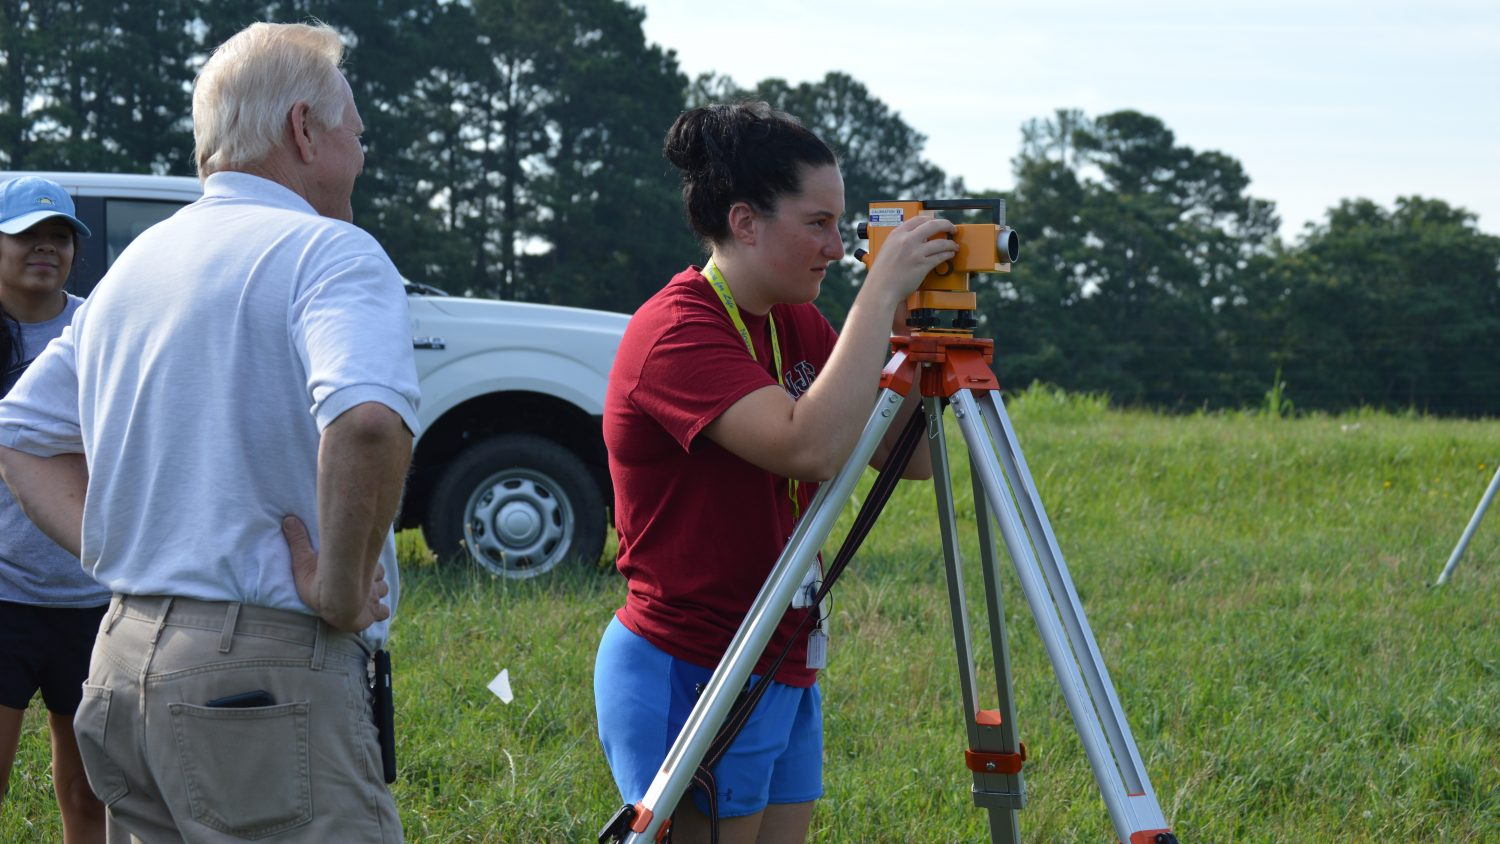 NC State RCW participant learns to use survey equipment